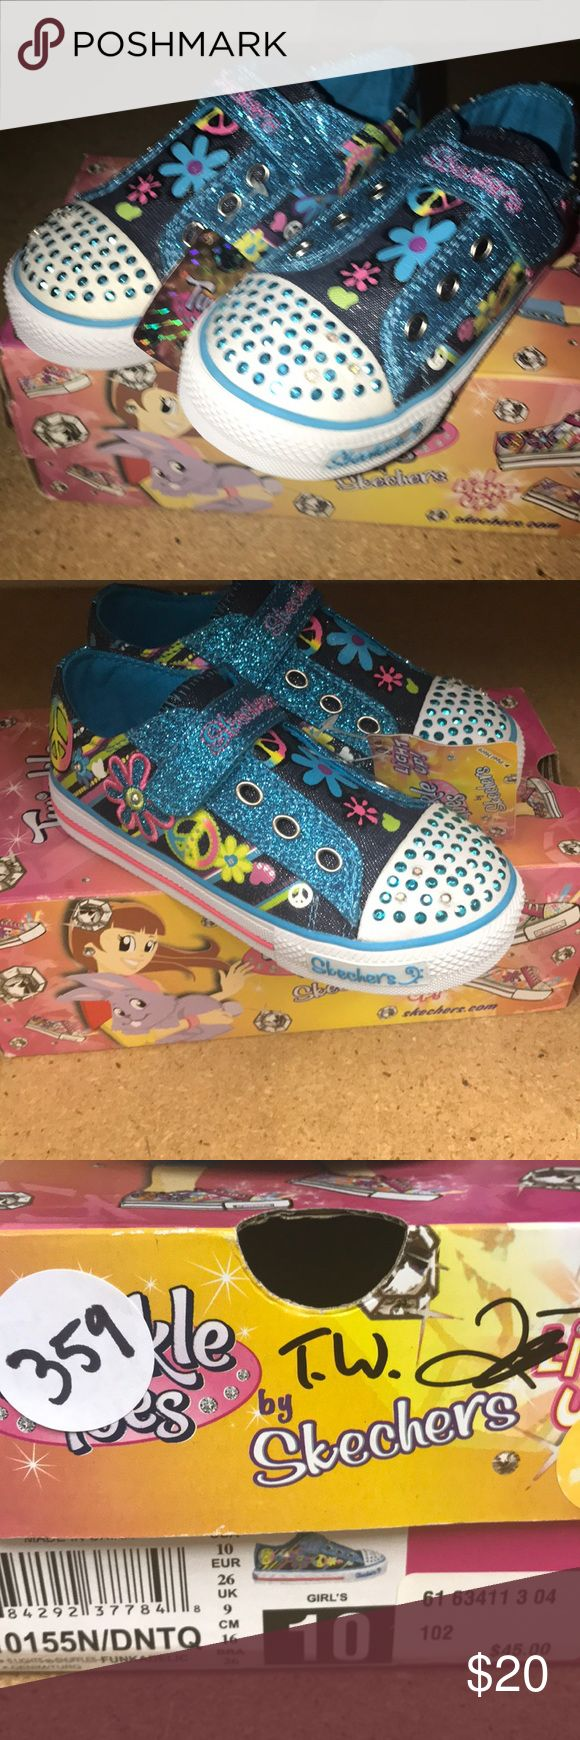 Twinkle Toes Skechers Sneakers Shoes for girls 10 Brand new in the box with tags.  So cute blinking twinkle toes Skechers  sneakers for your little girls.  Got this for my little one but she's too big for this size.  So they are brand new! Skechers Shoes Sneakers